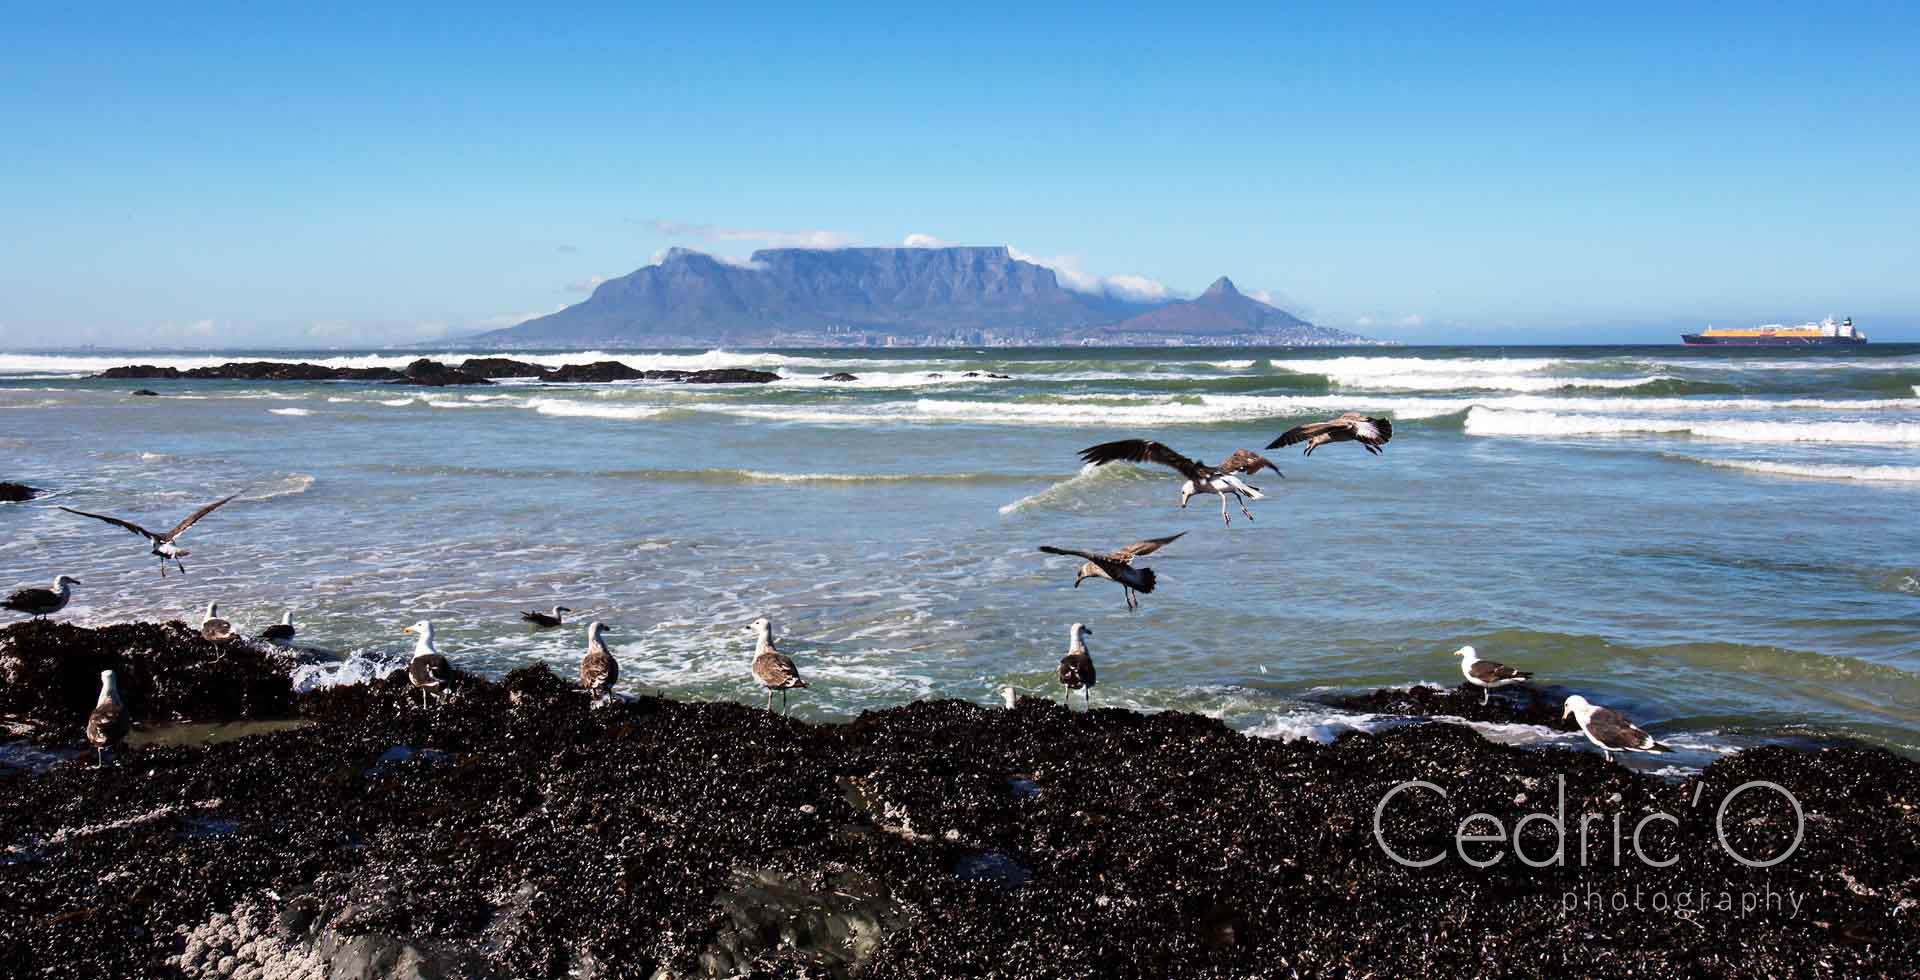 Table-bay with Table-Mountain